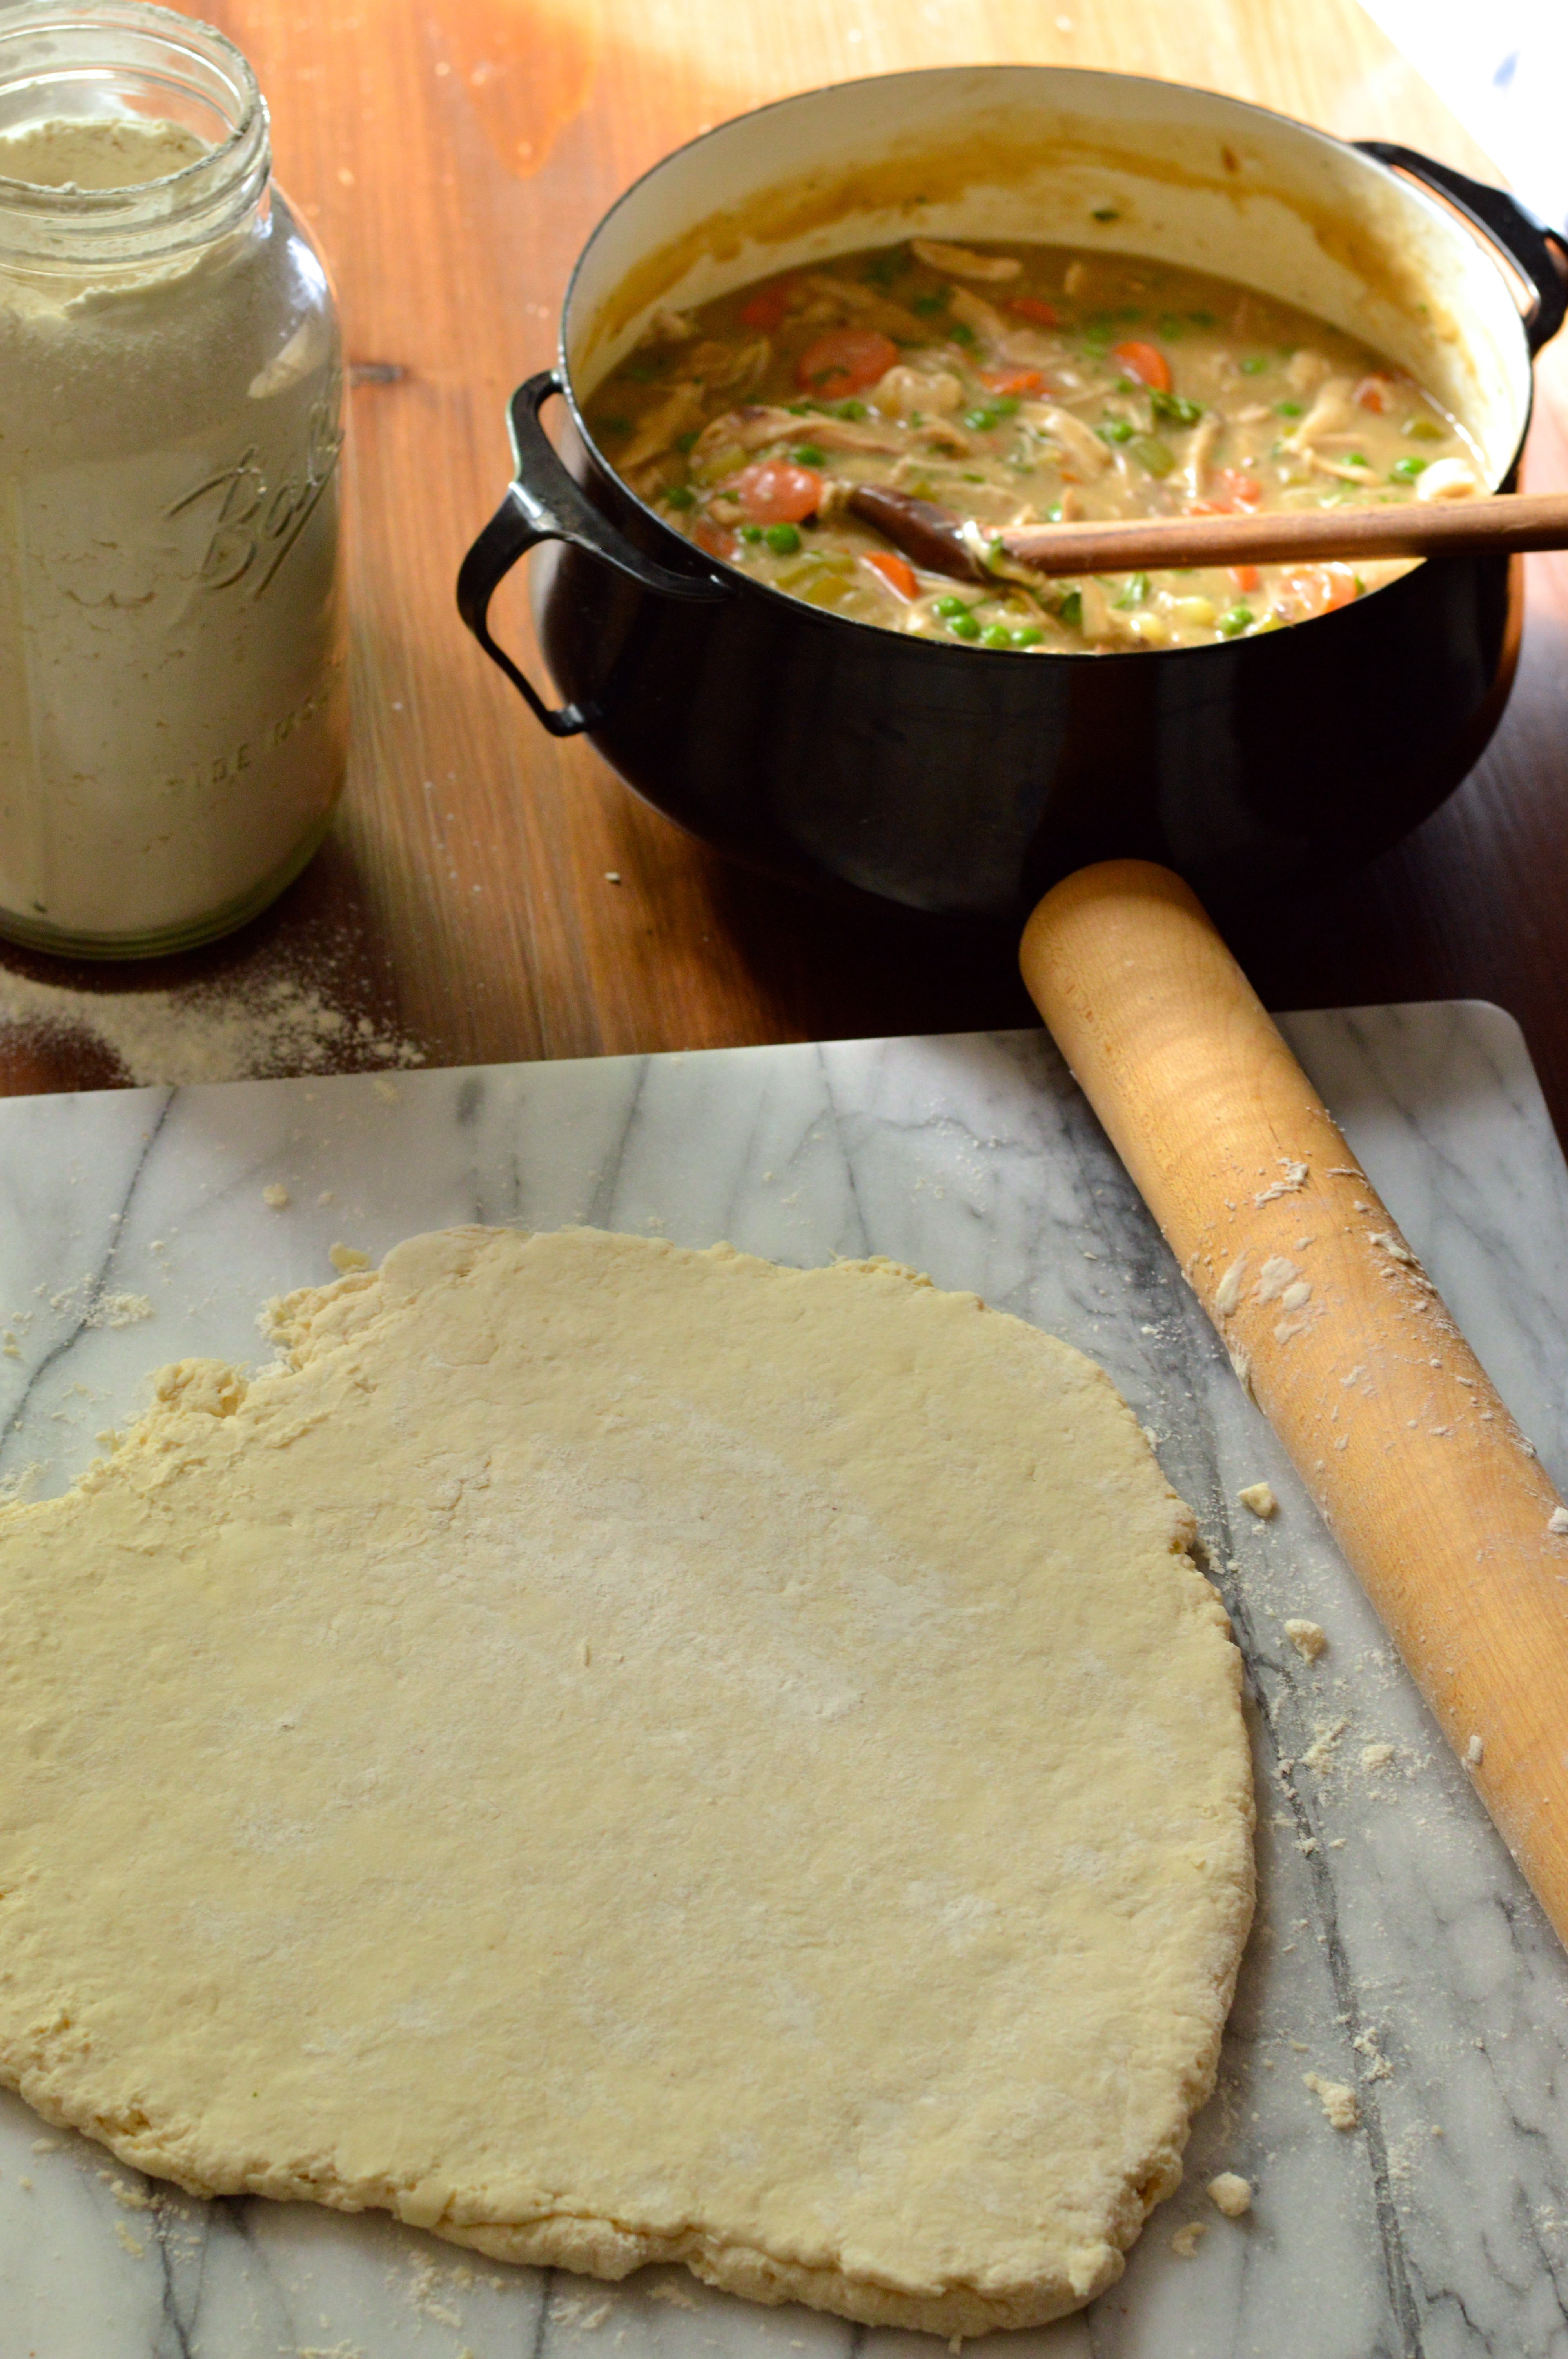 Homemade Chicken Pot Pie With Buttermilk Biscuit Crust Brooklyn Homemaker